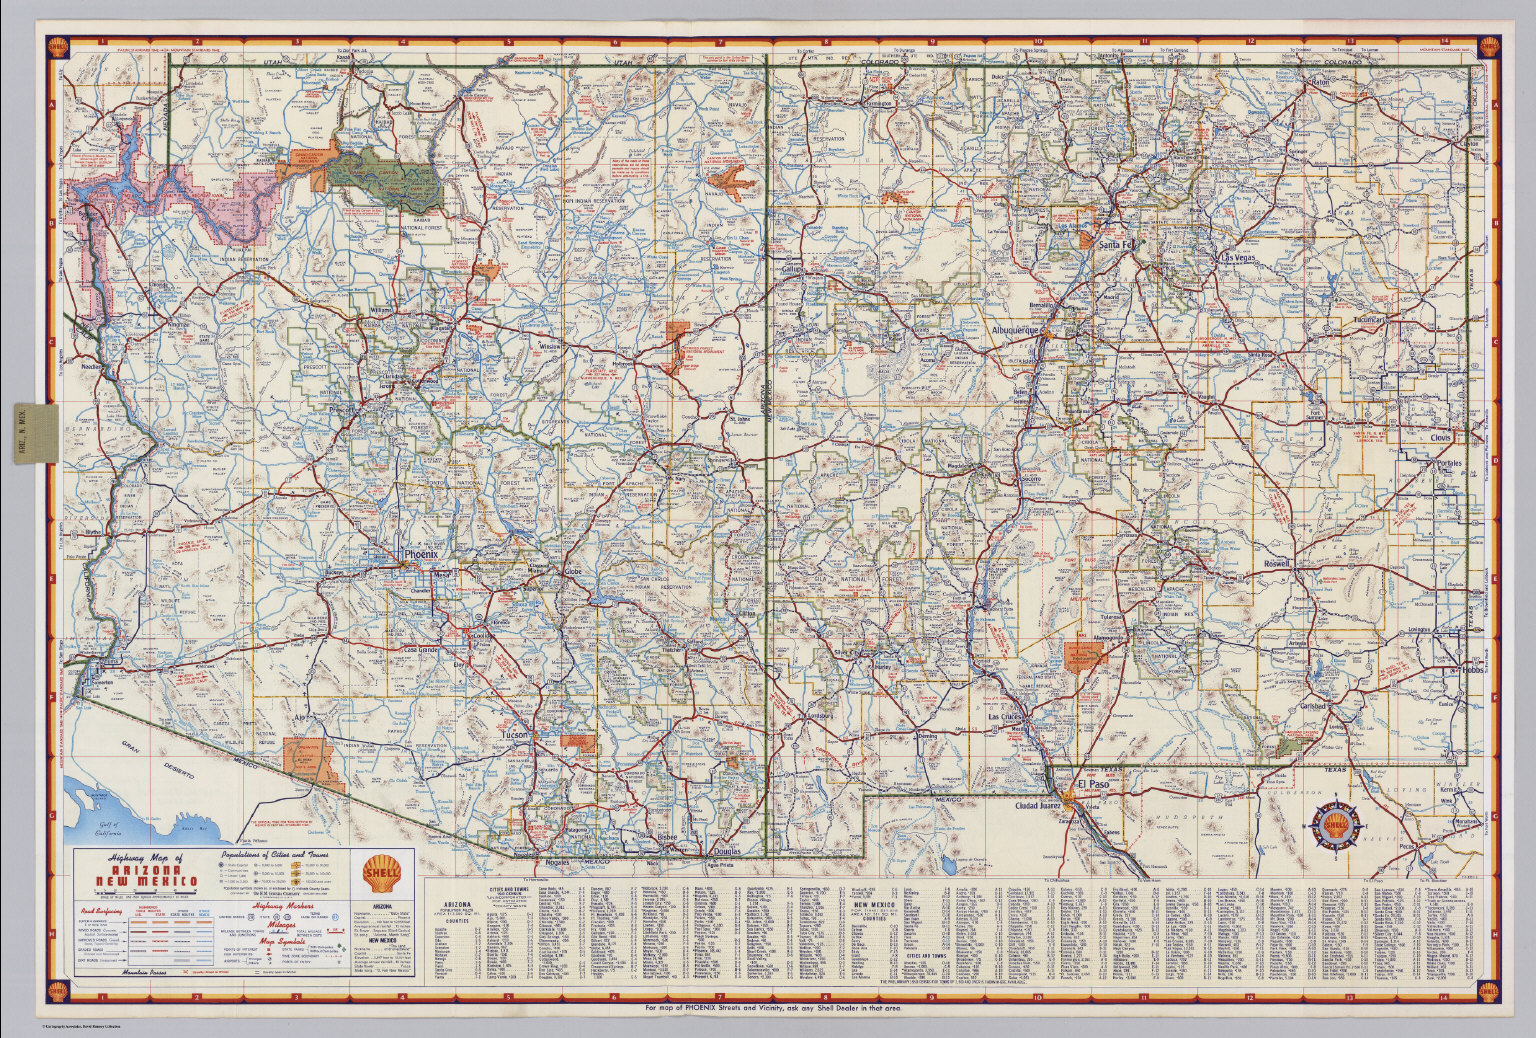 shell highway map of arizona and new mexico